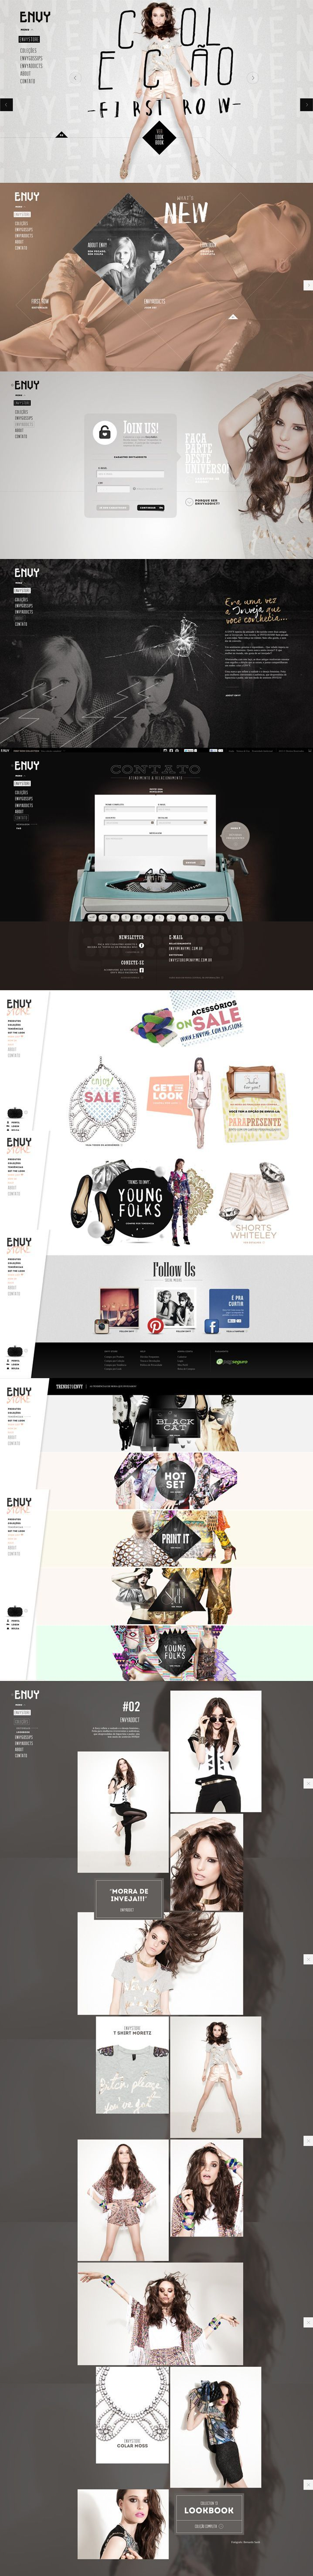 best web images on pinterest graph design image editing and